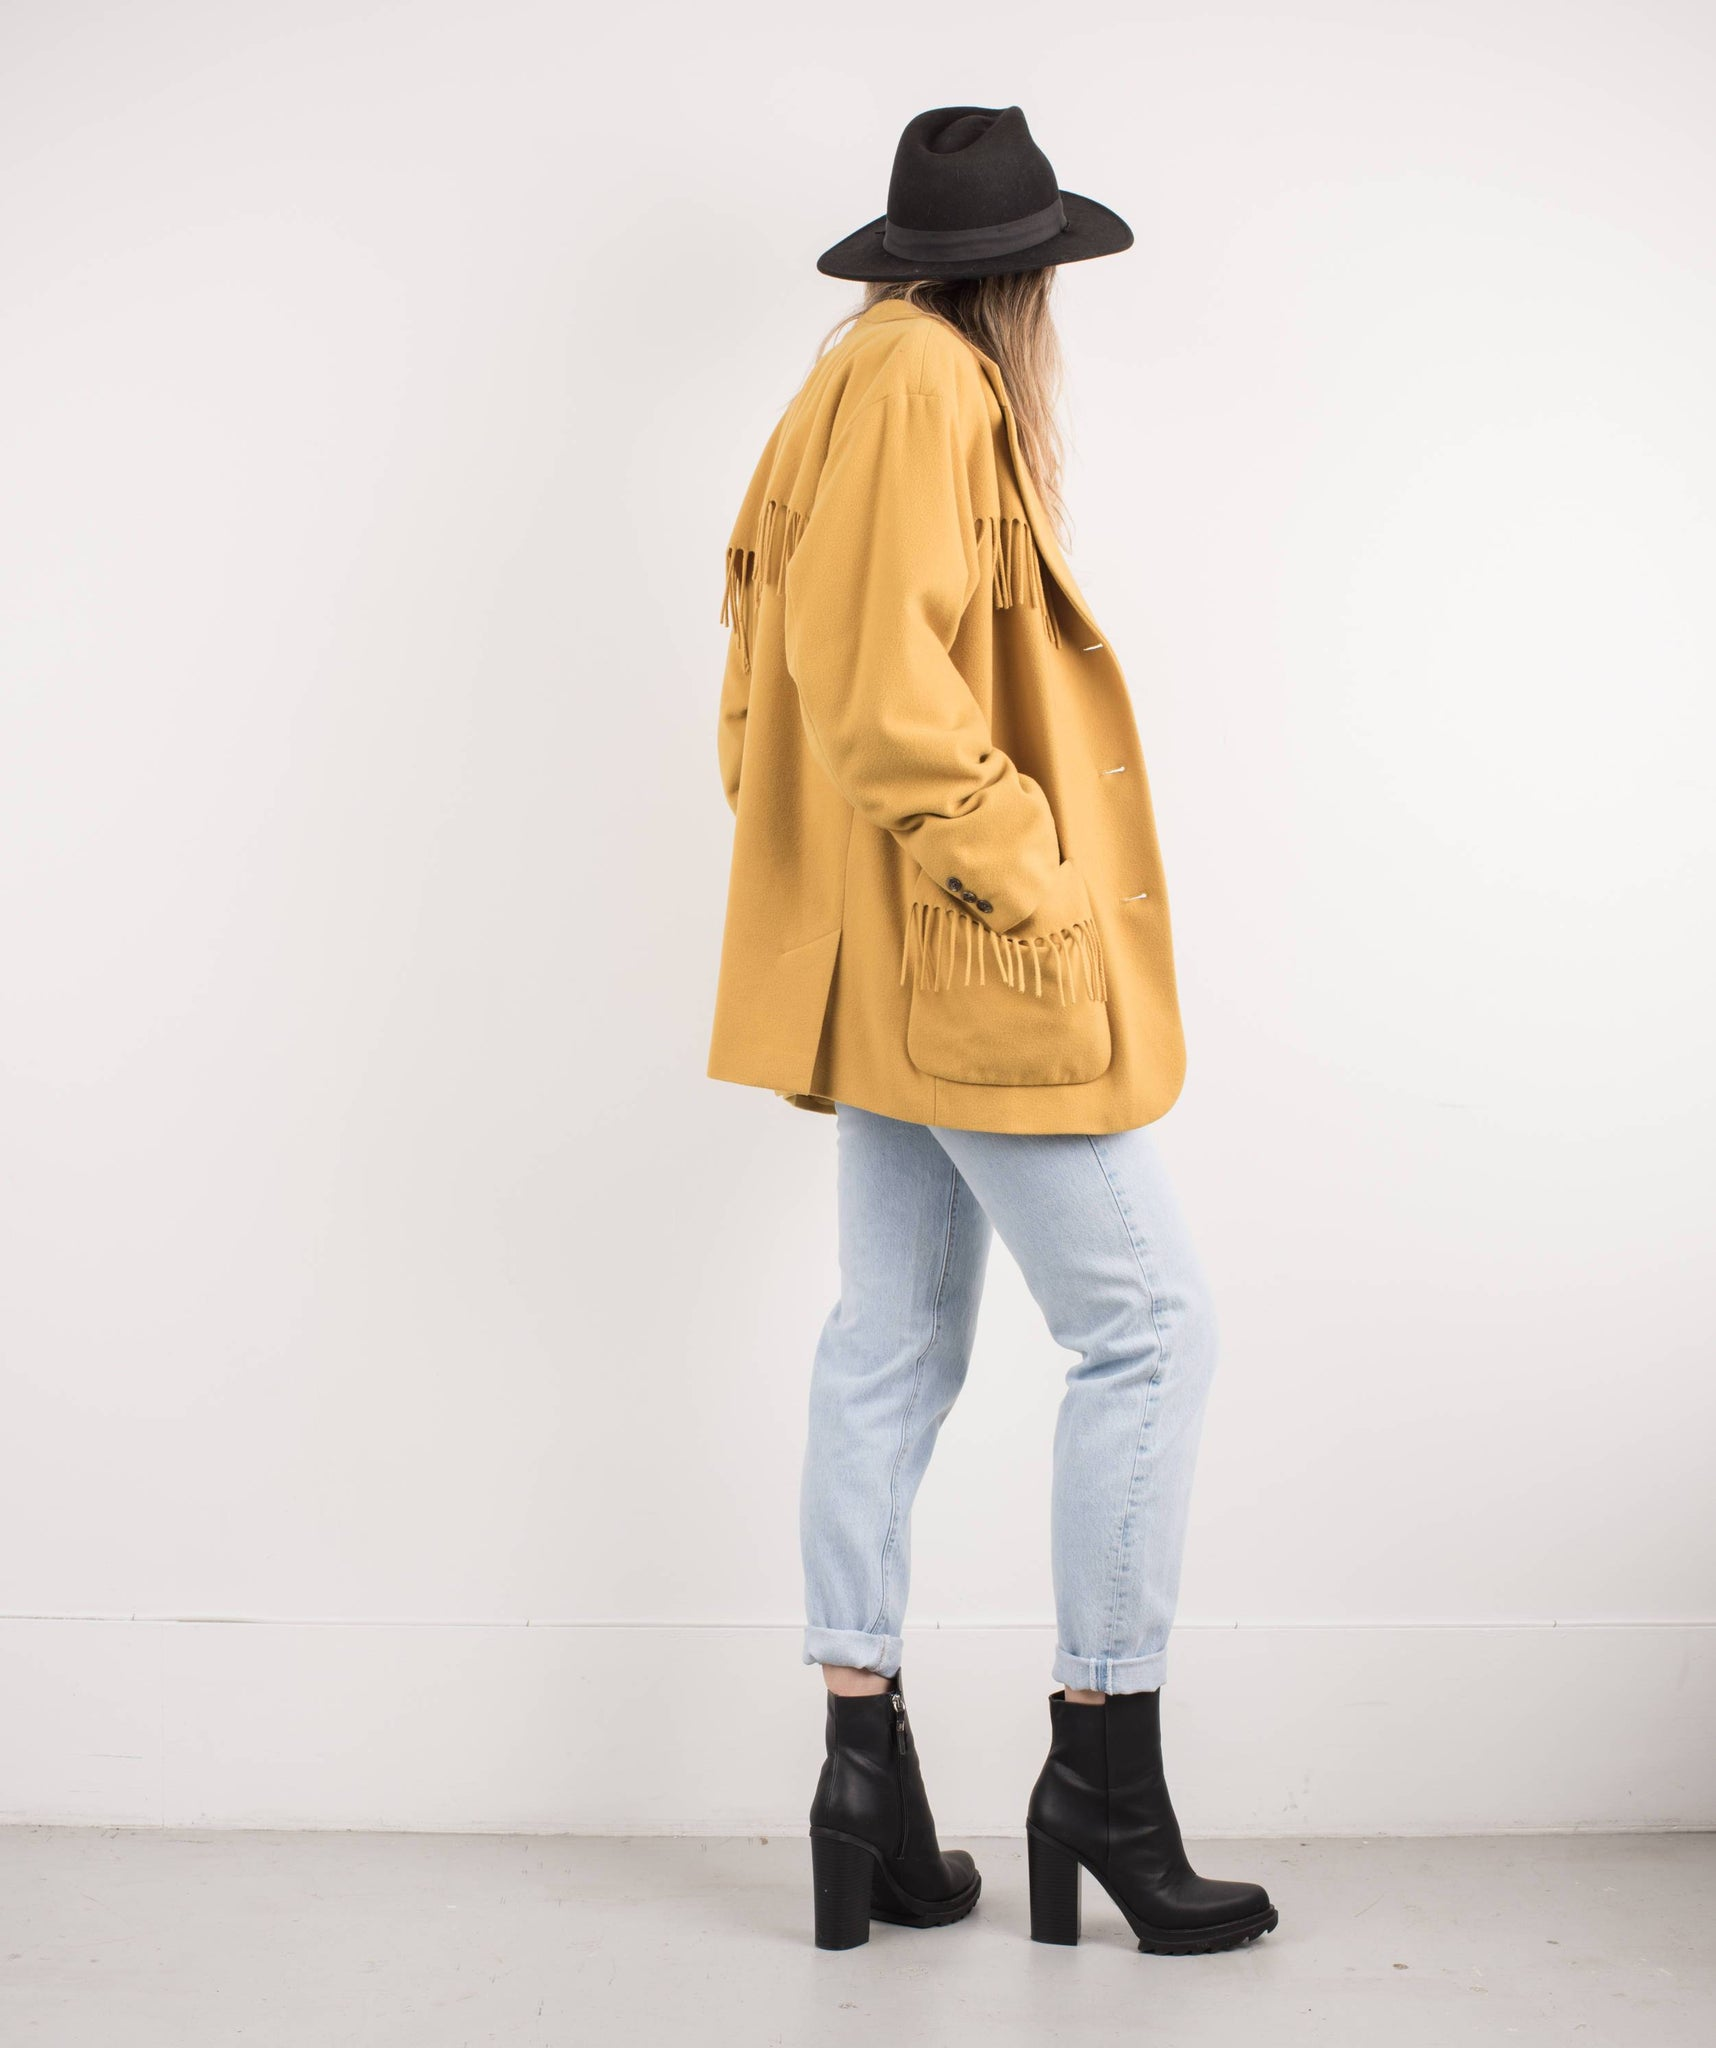 Vintage Mustard Wool and Cashmere Fringe Jacket / S - Closed Caption